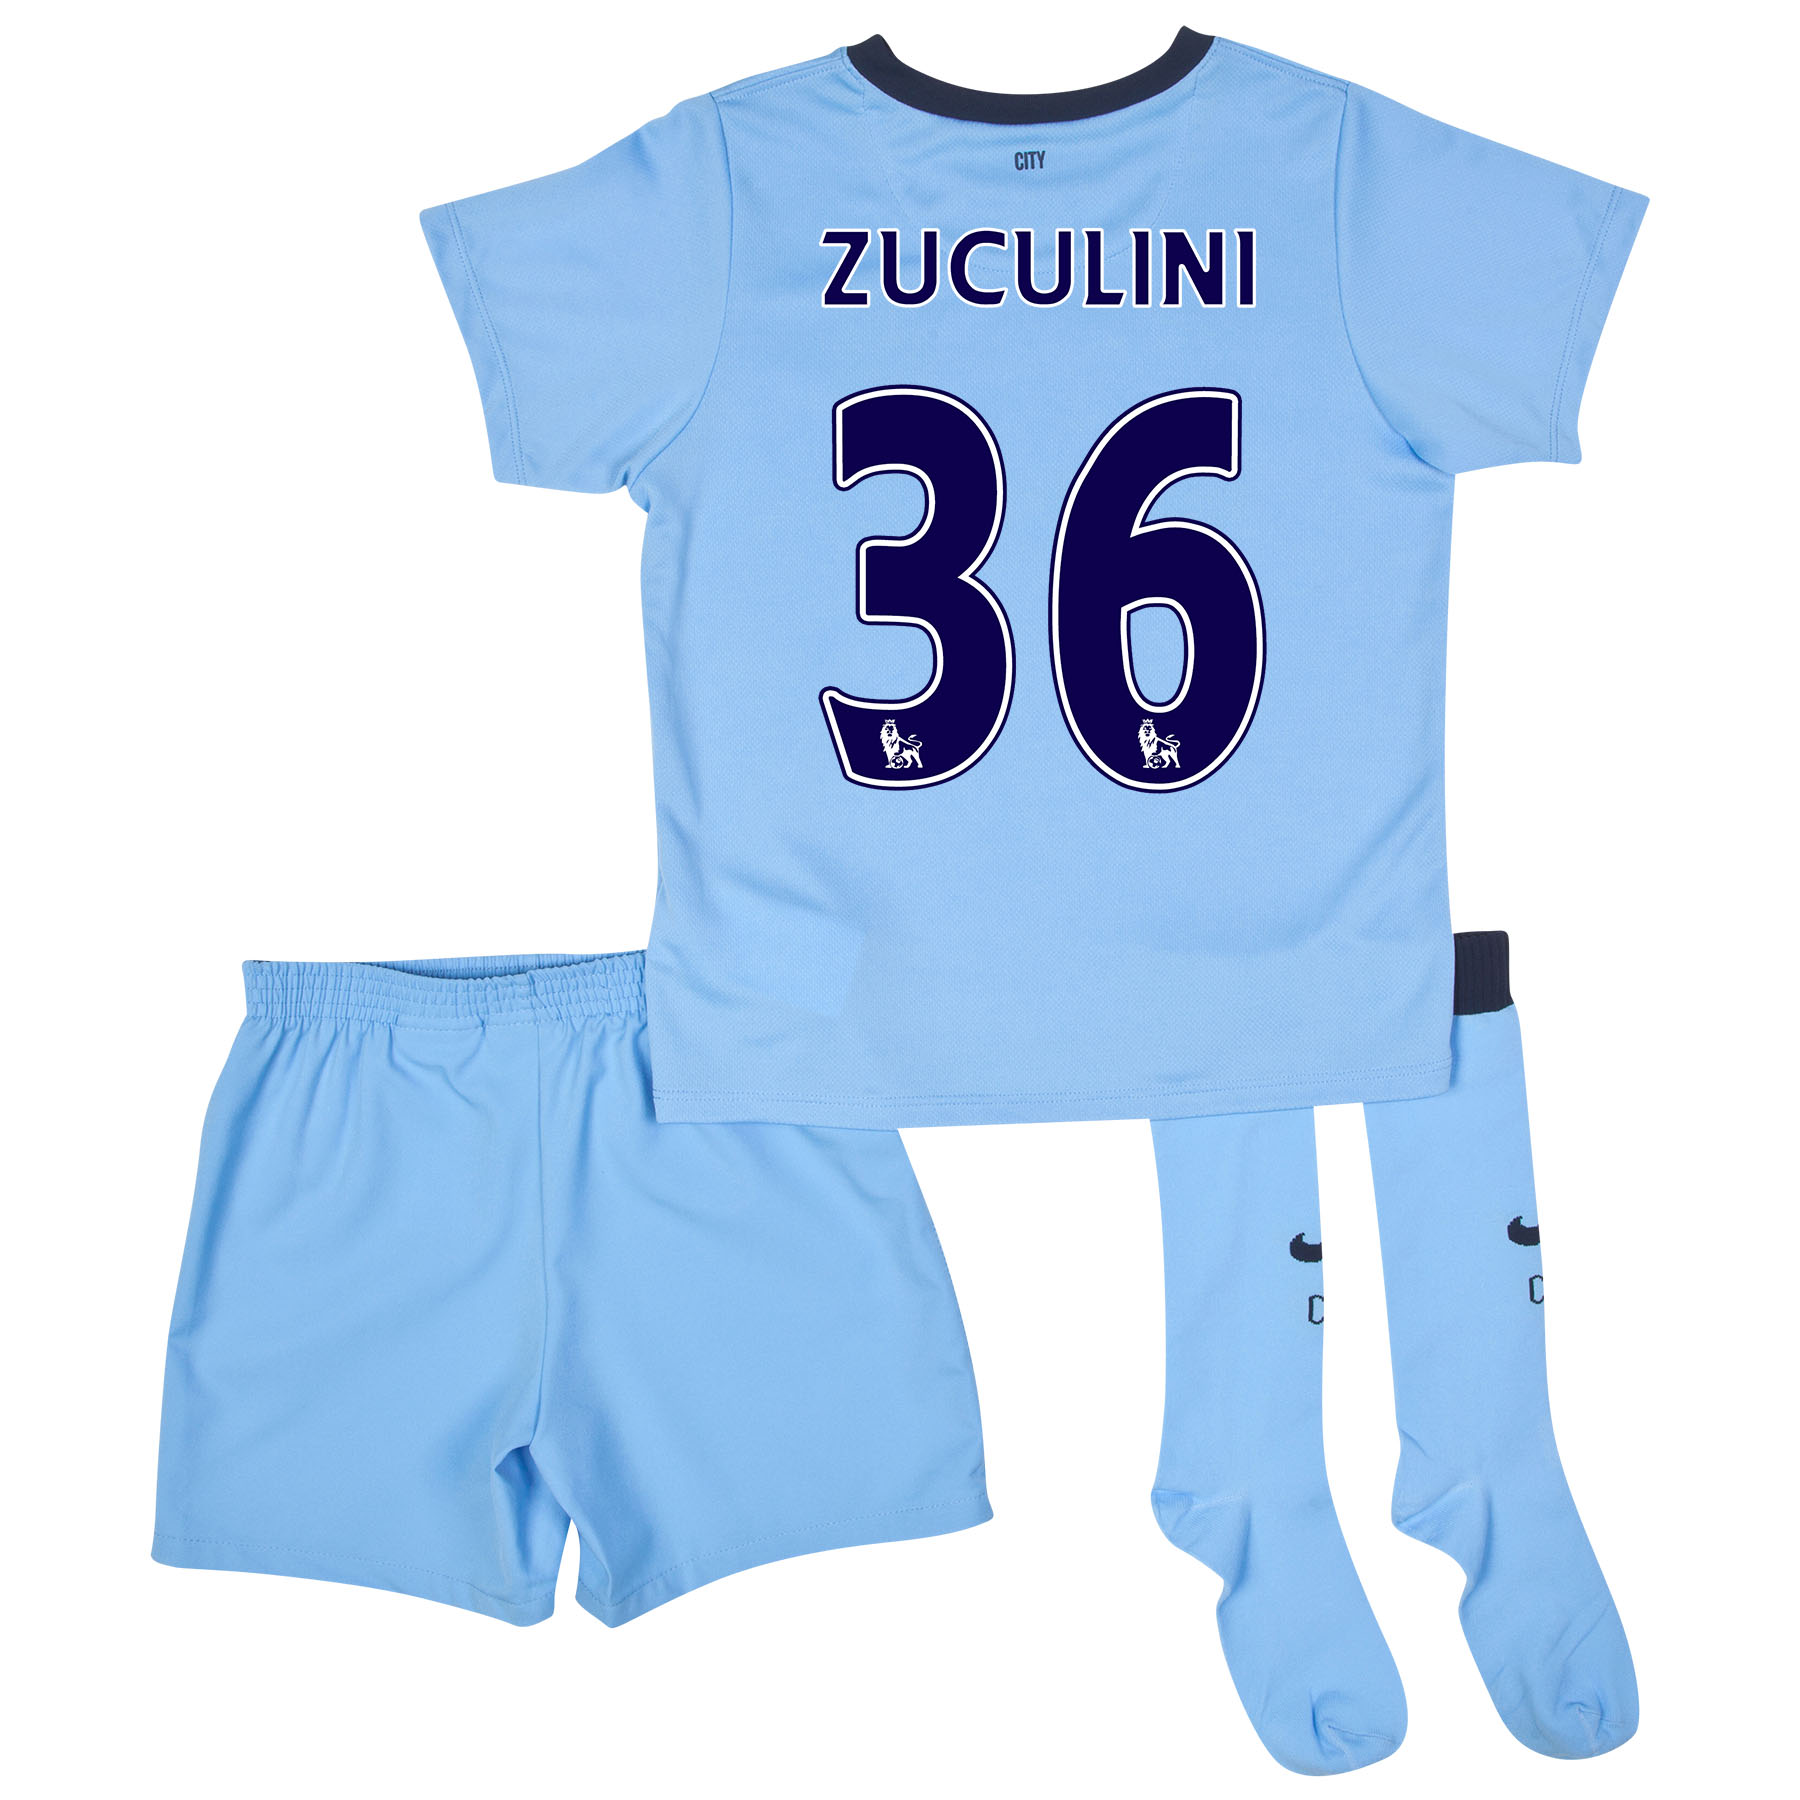 Manchester City Home Kit 2014/15 - Little Boys Sky Blue with Zuculini 36 printing